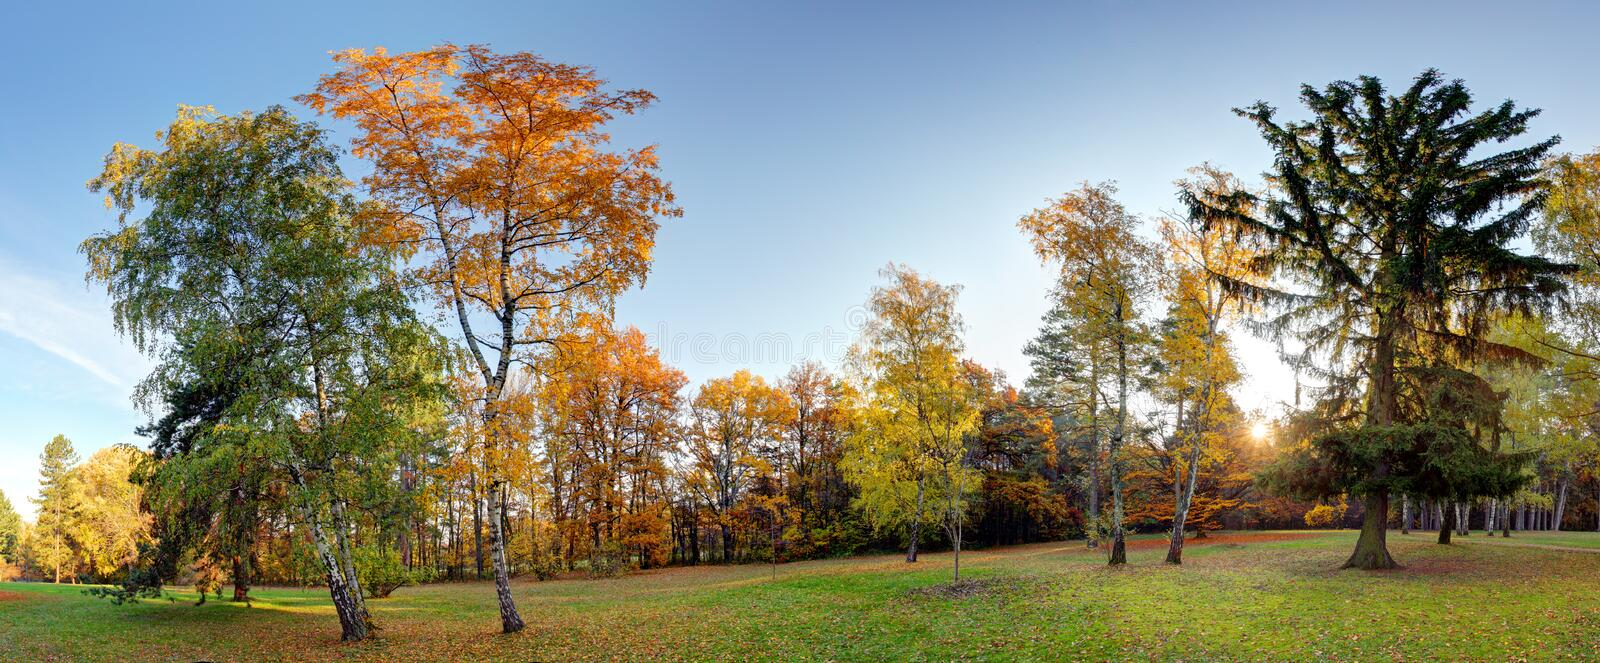 Panorama of Summer - autumn tree in forest park.  stock images